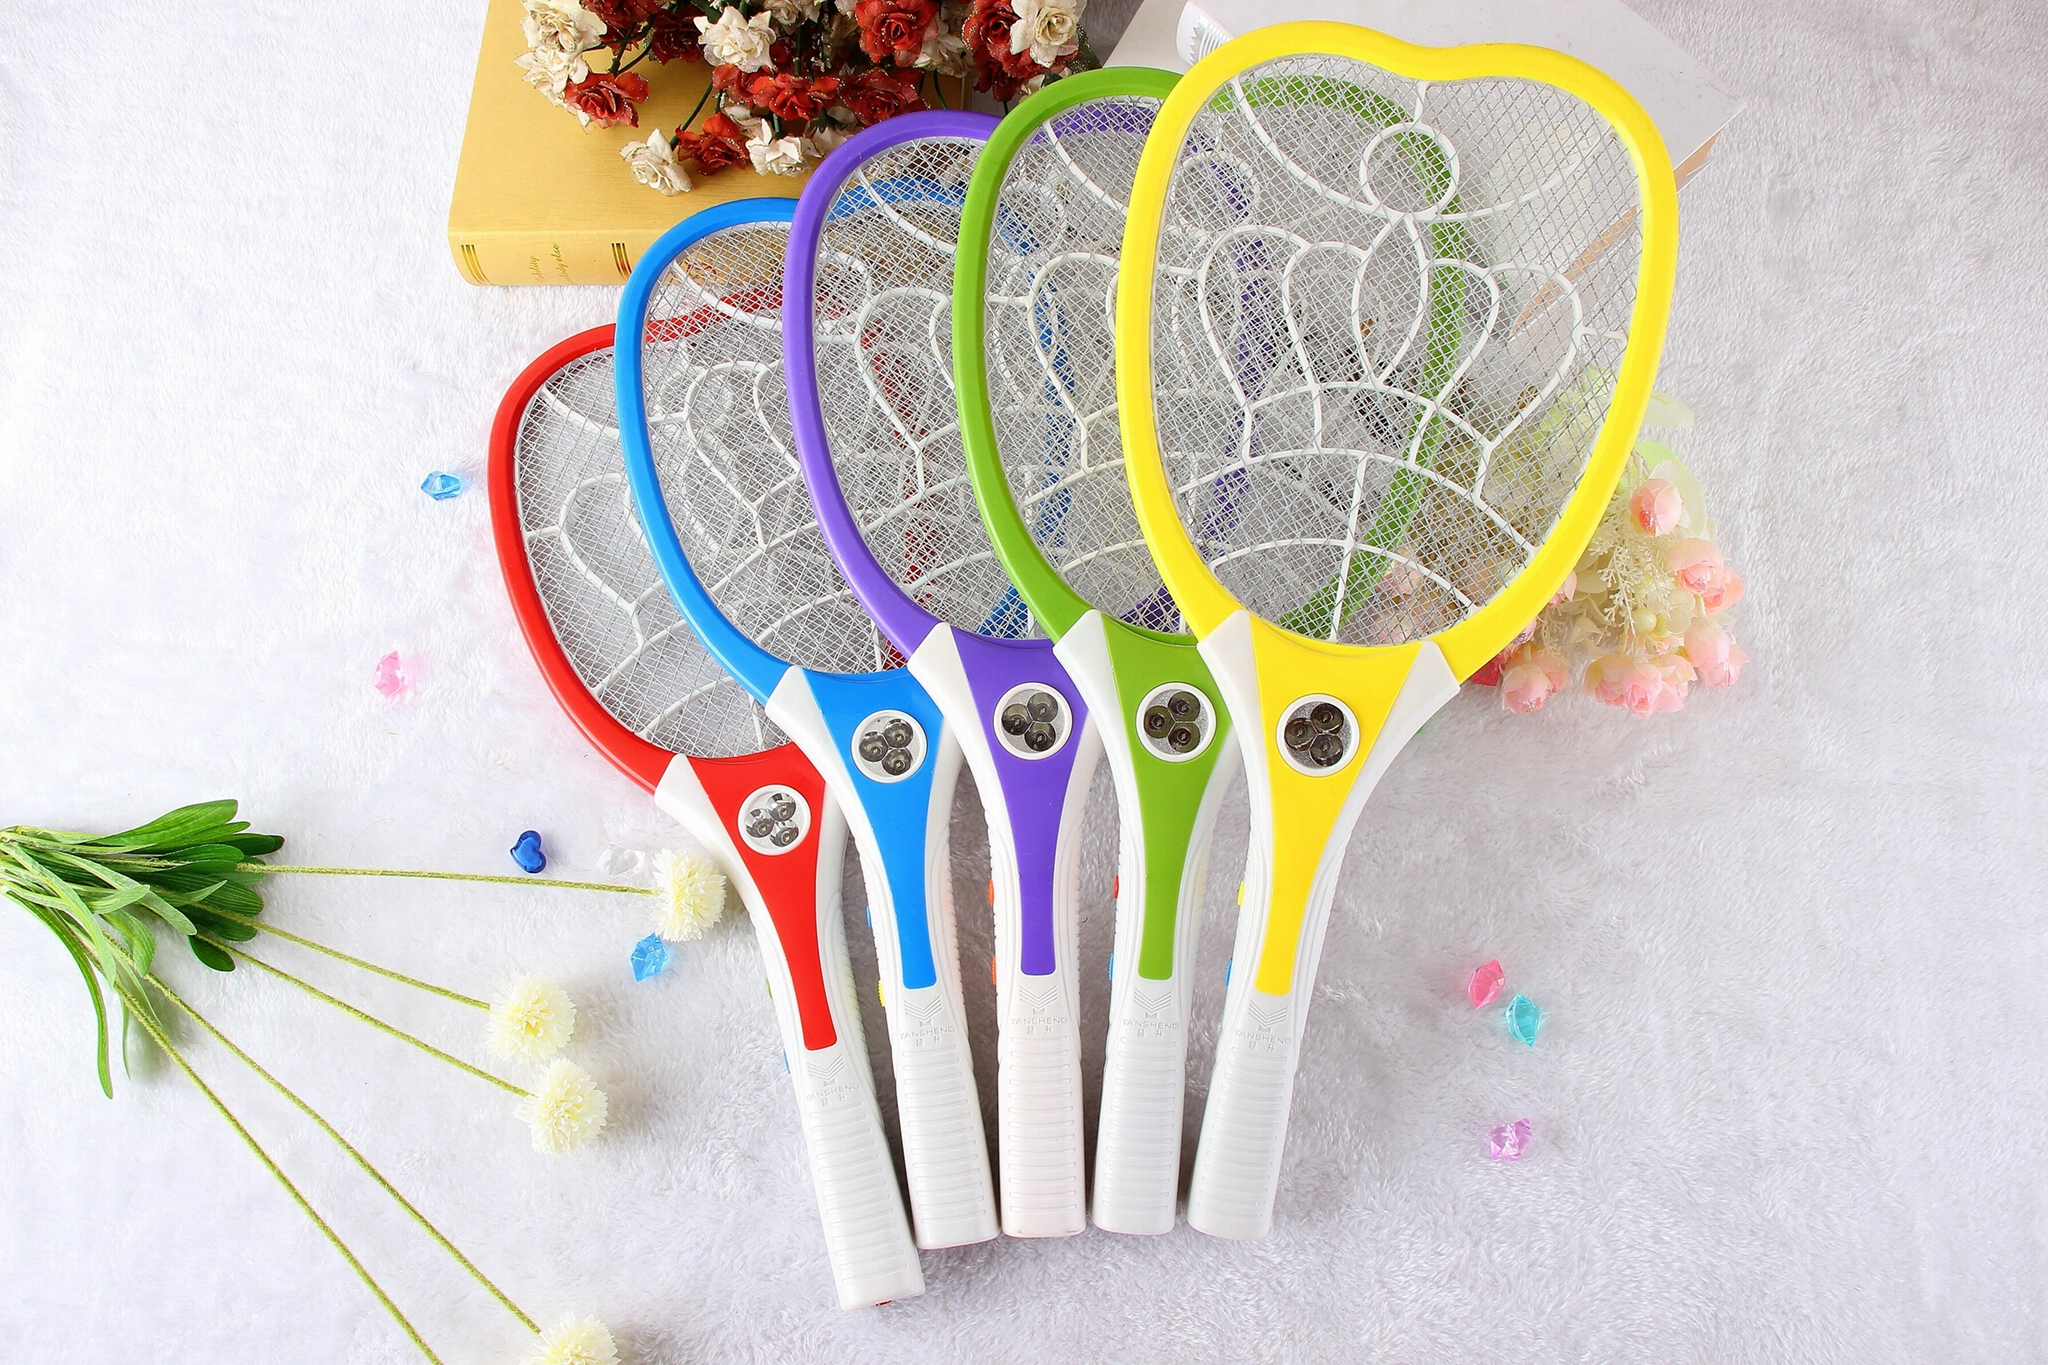 Rechargerable  Electronic Mosquito Swatter with CE certification 5